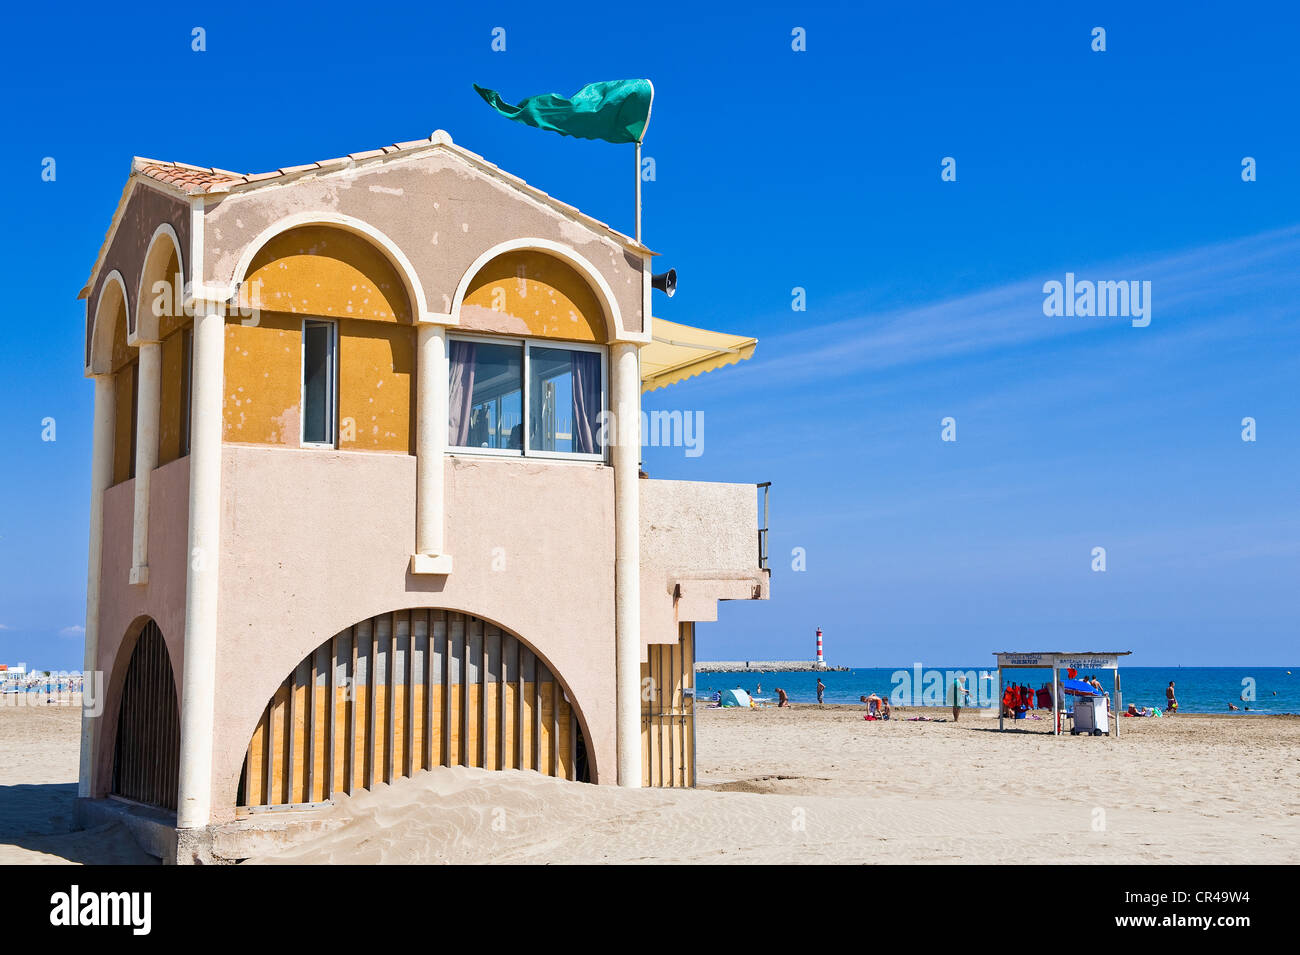 France, Aude, Corbieres, Port la Nouvelle, first aid post on the beach - Stock Image